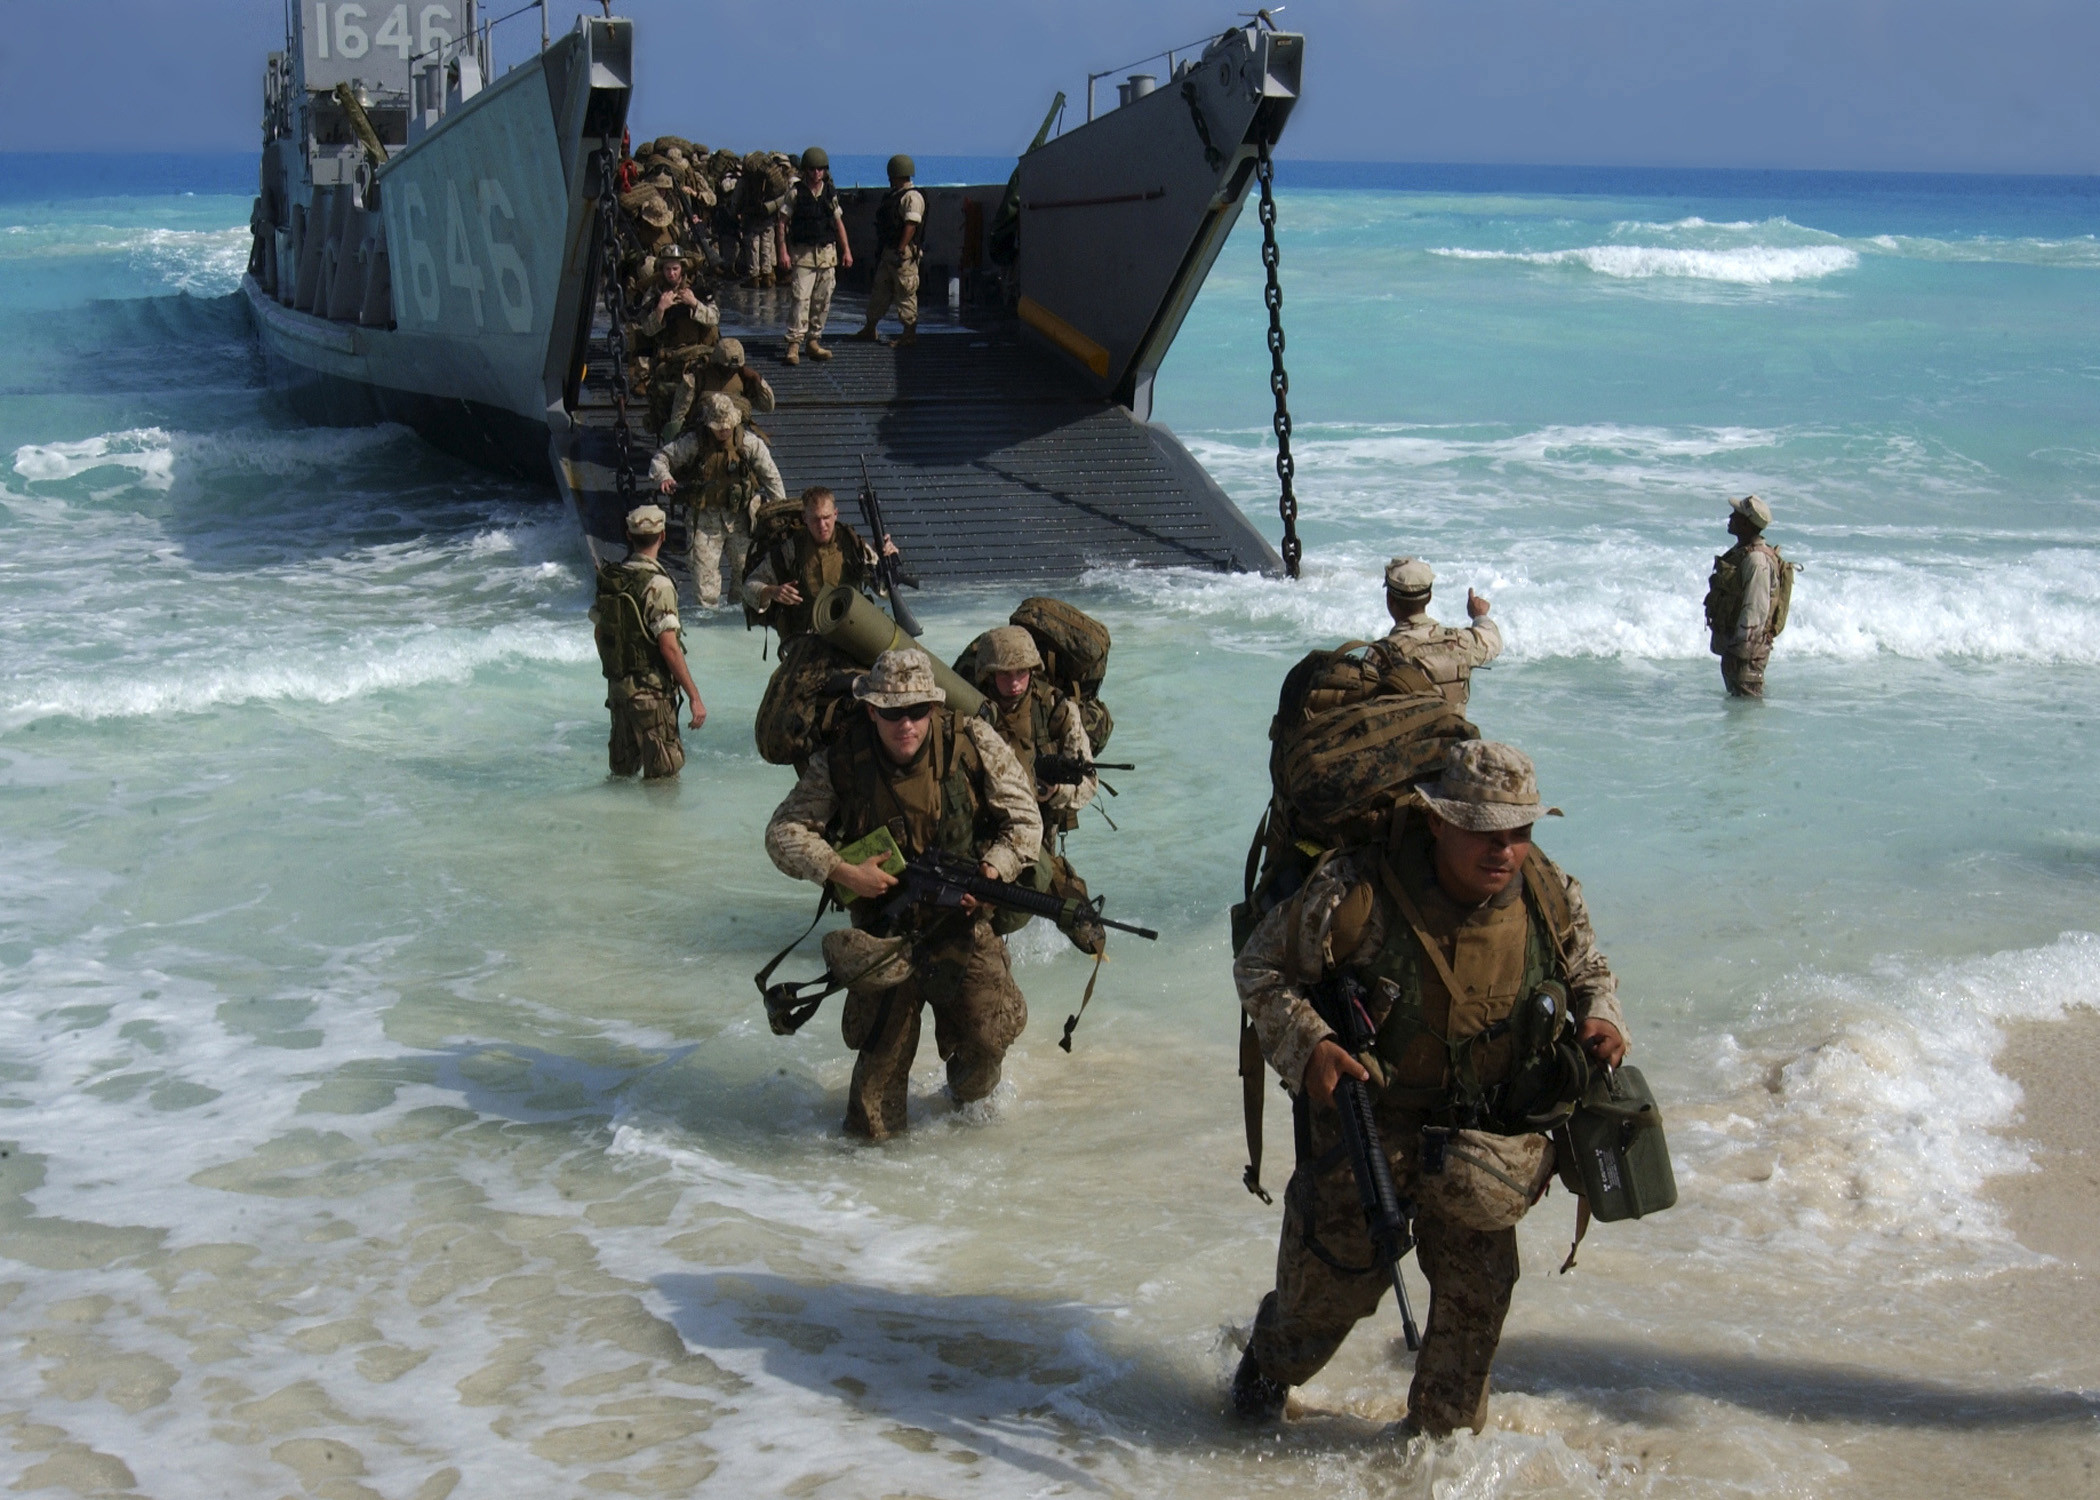 2100x1500 U.S. Marines from Expeditionary Strike Group One, 13th Marine Expeditionary  Unit wade ashore from a